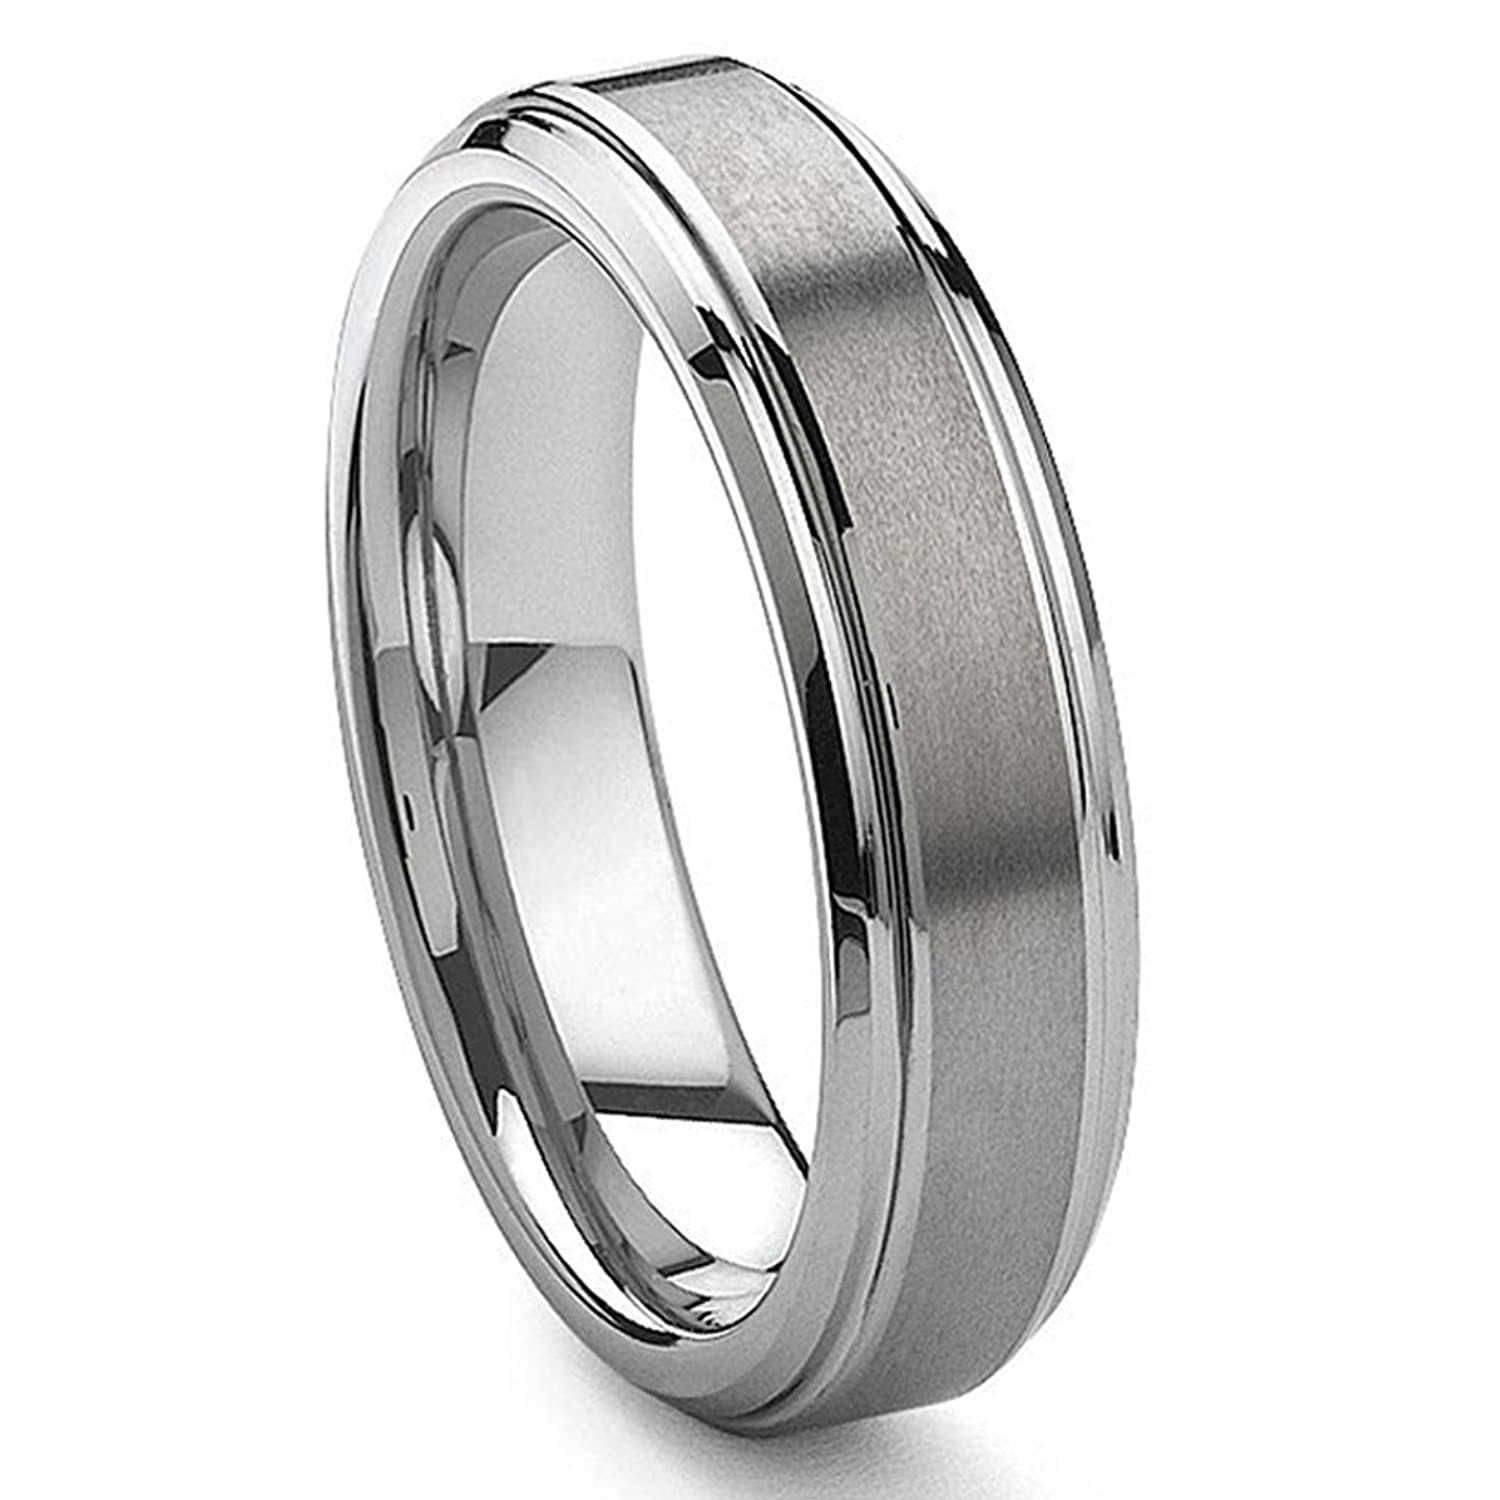 6MM Tungsten Carbide Wedding Band Ring Brushed Center